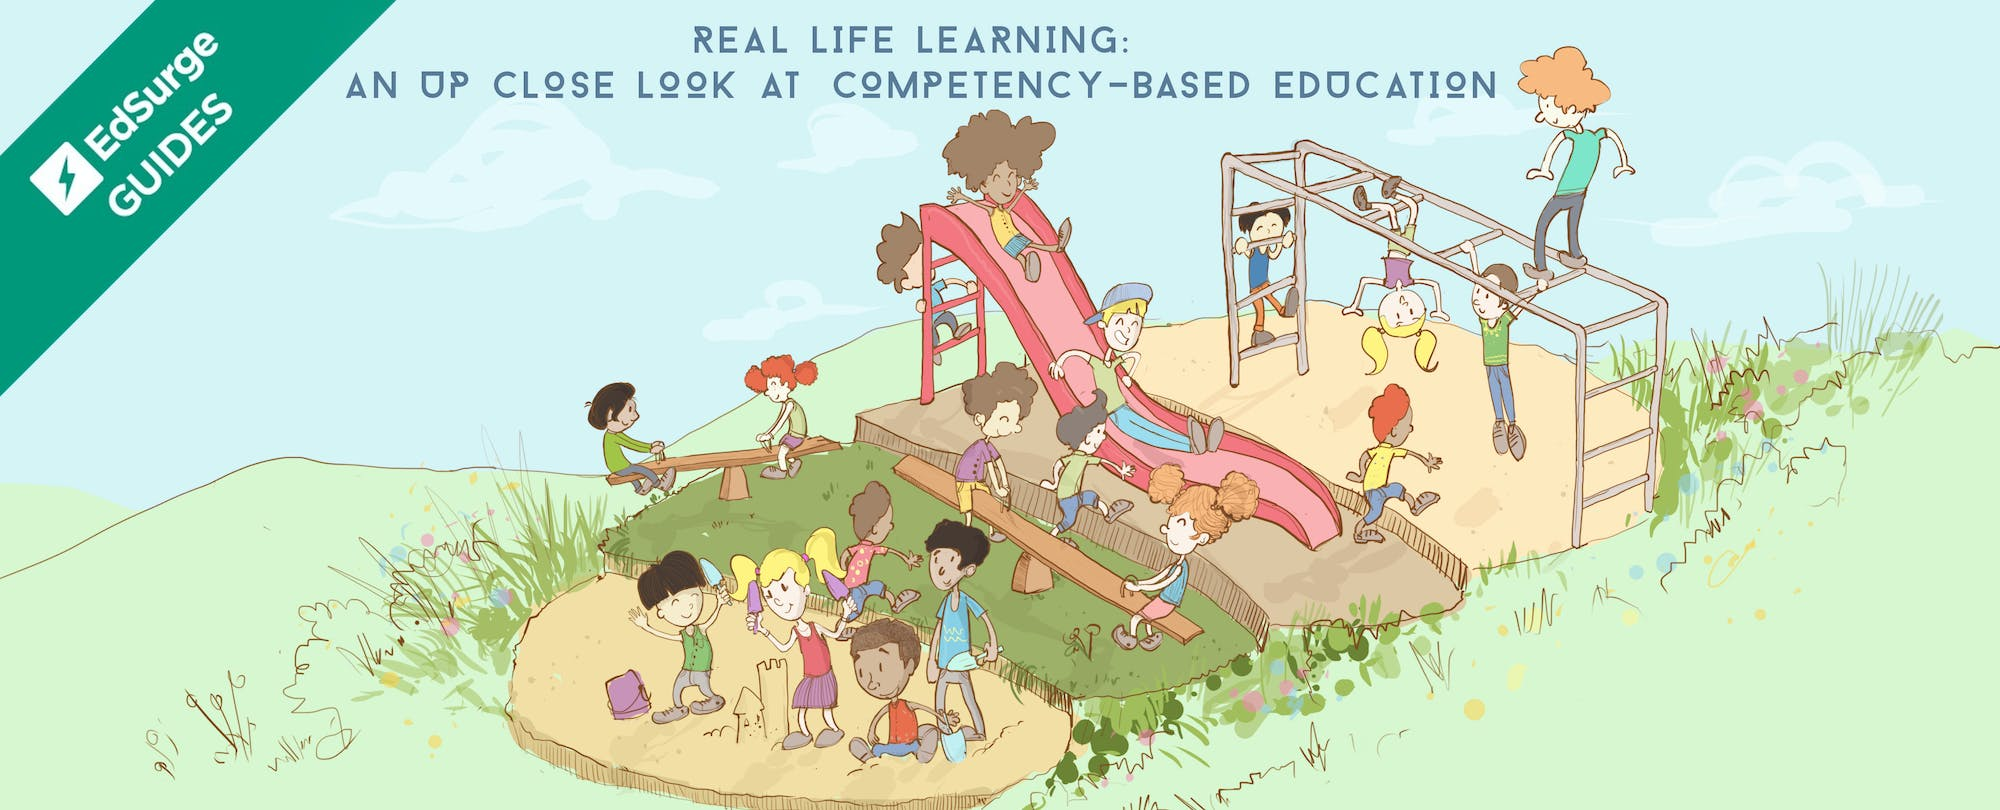 Real Life Learning: An Up Close Look at Competency-Based Education